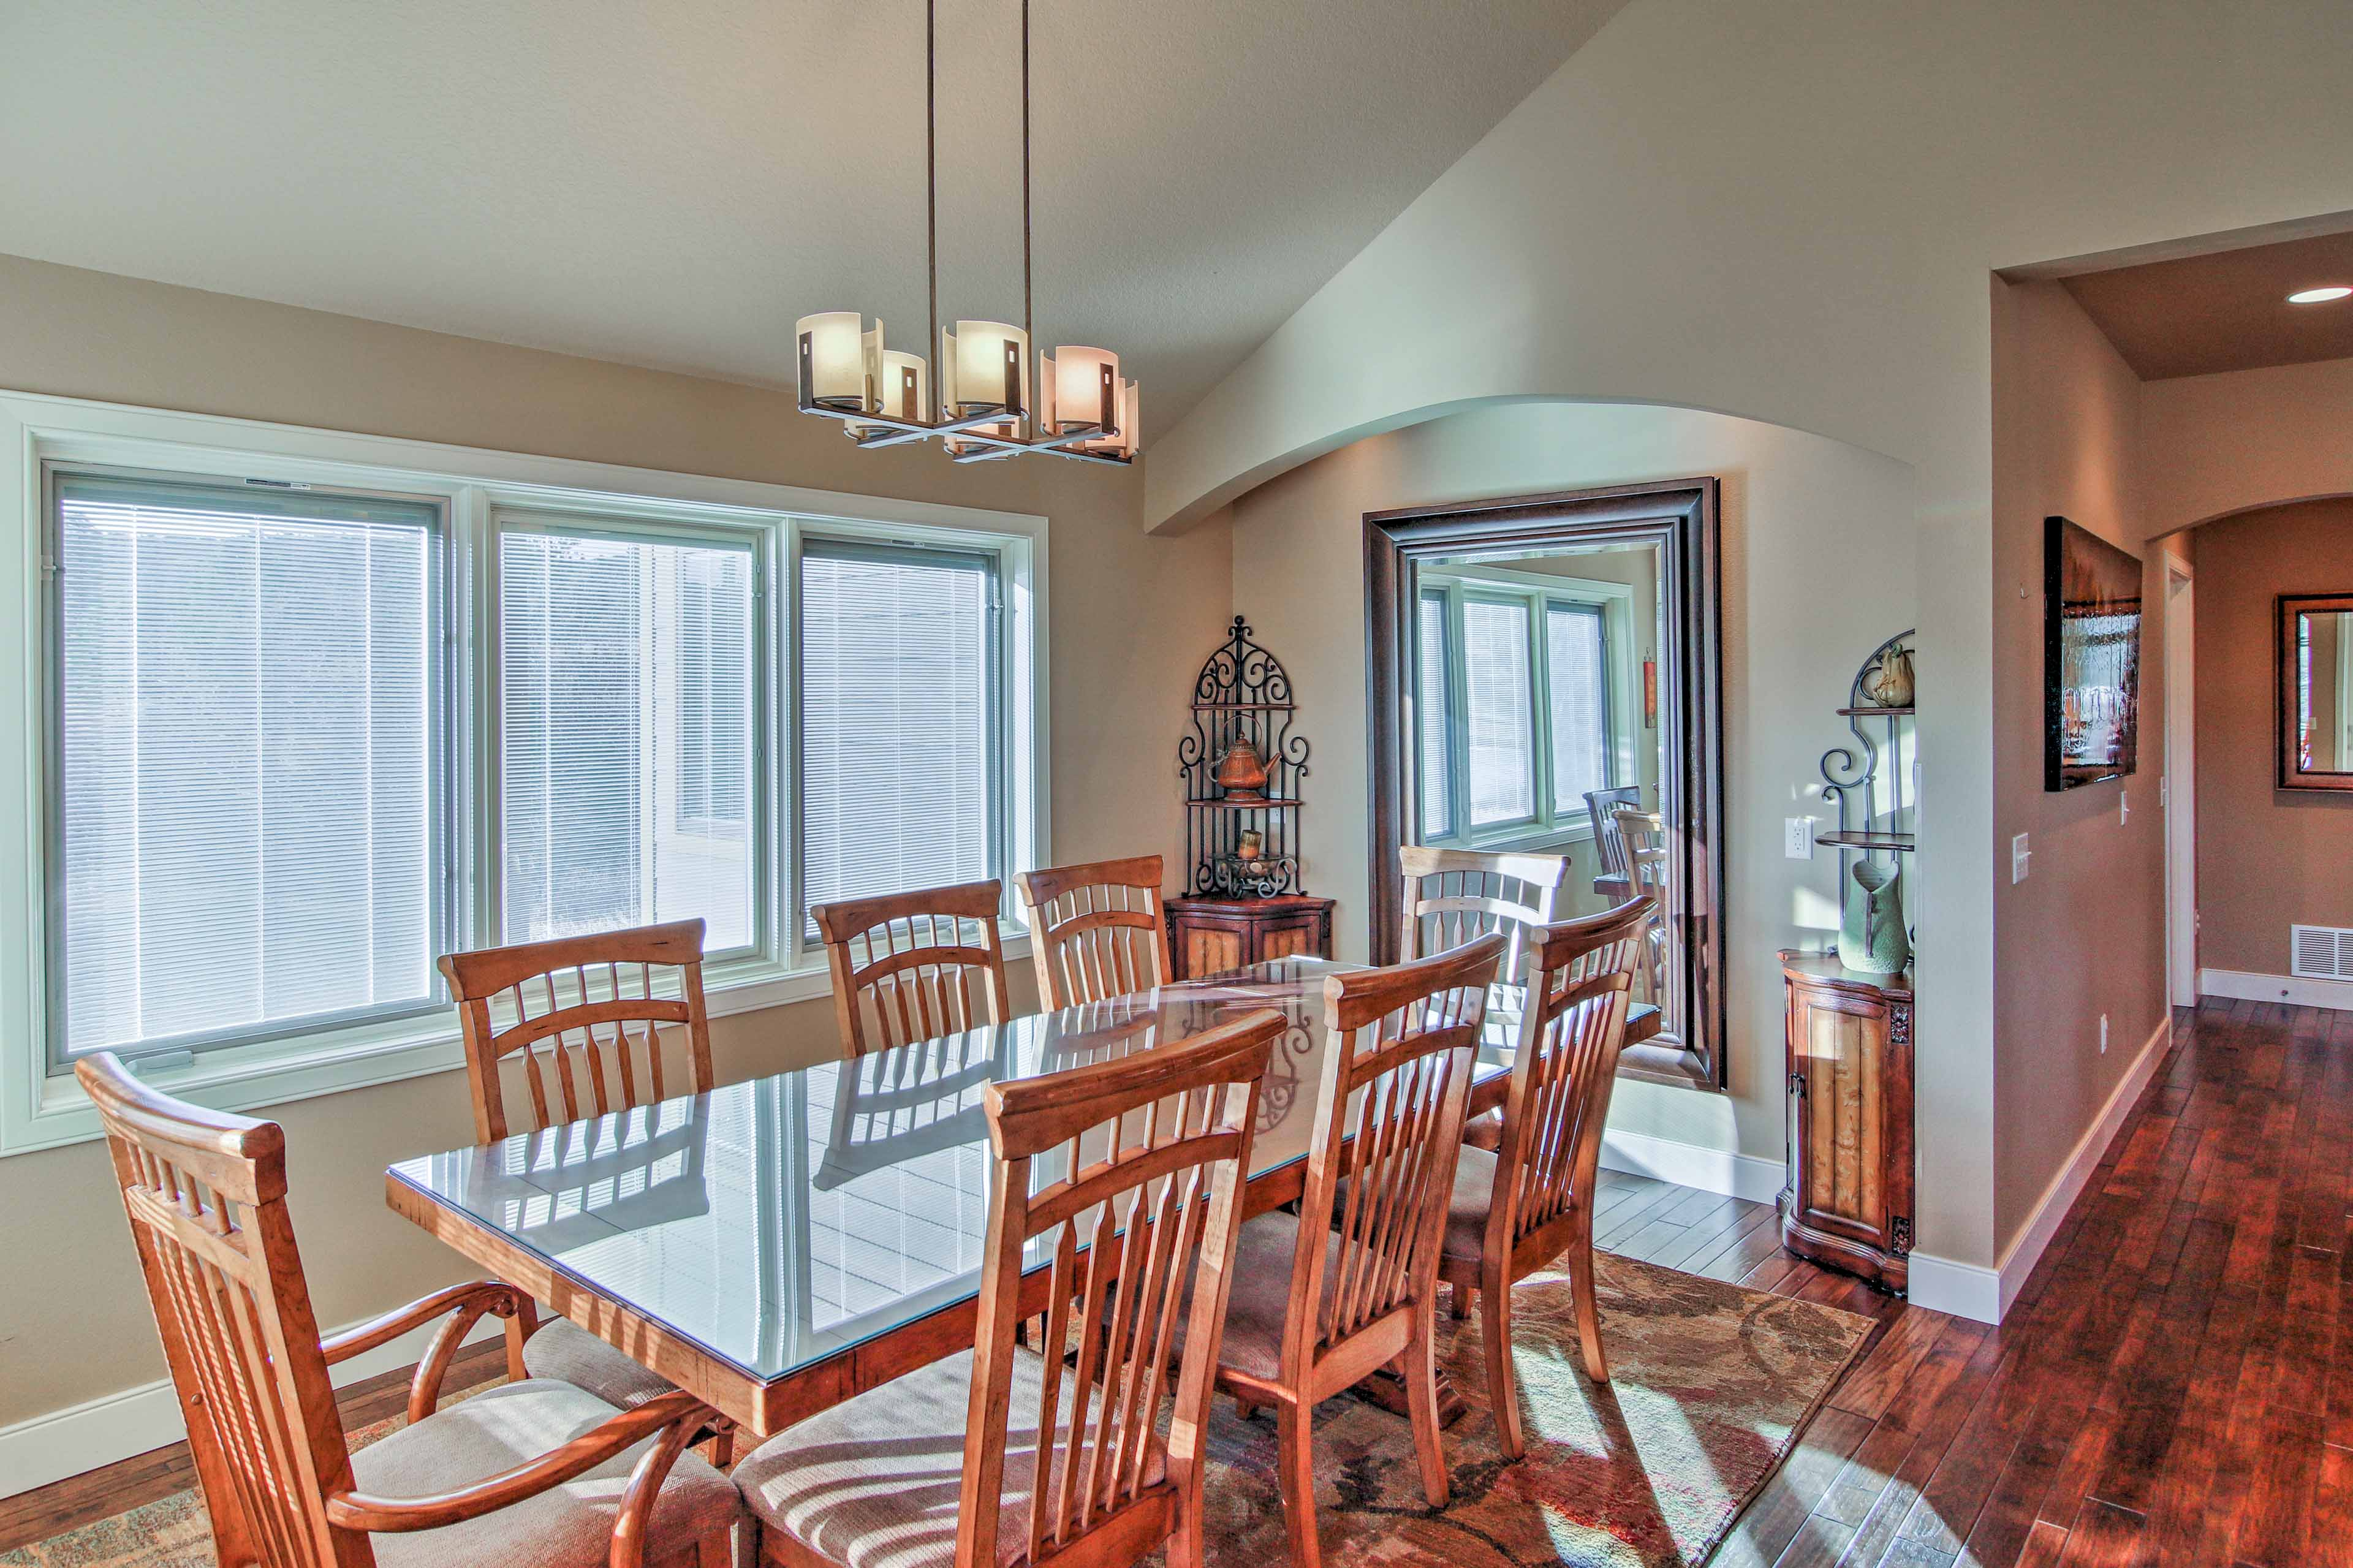 Gather around the 8-person dining table to enjoy a home-cooked meal.